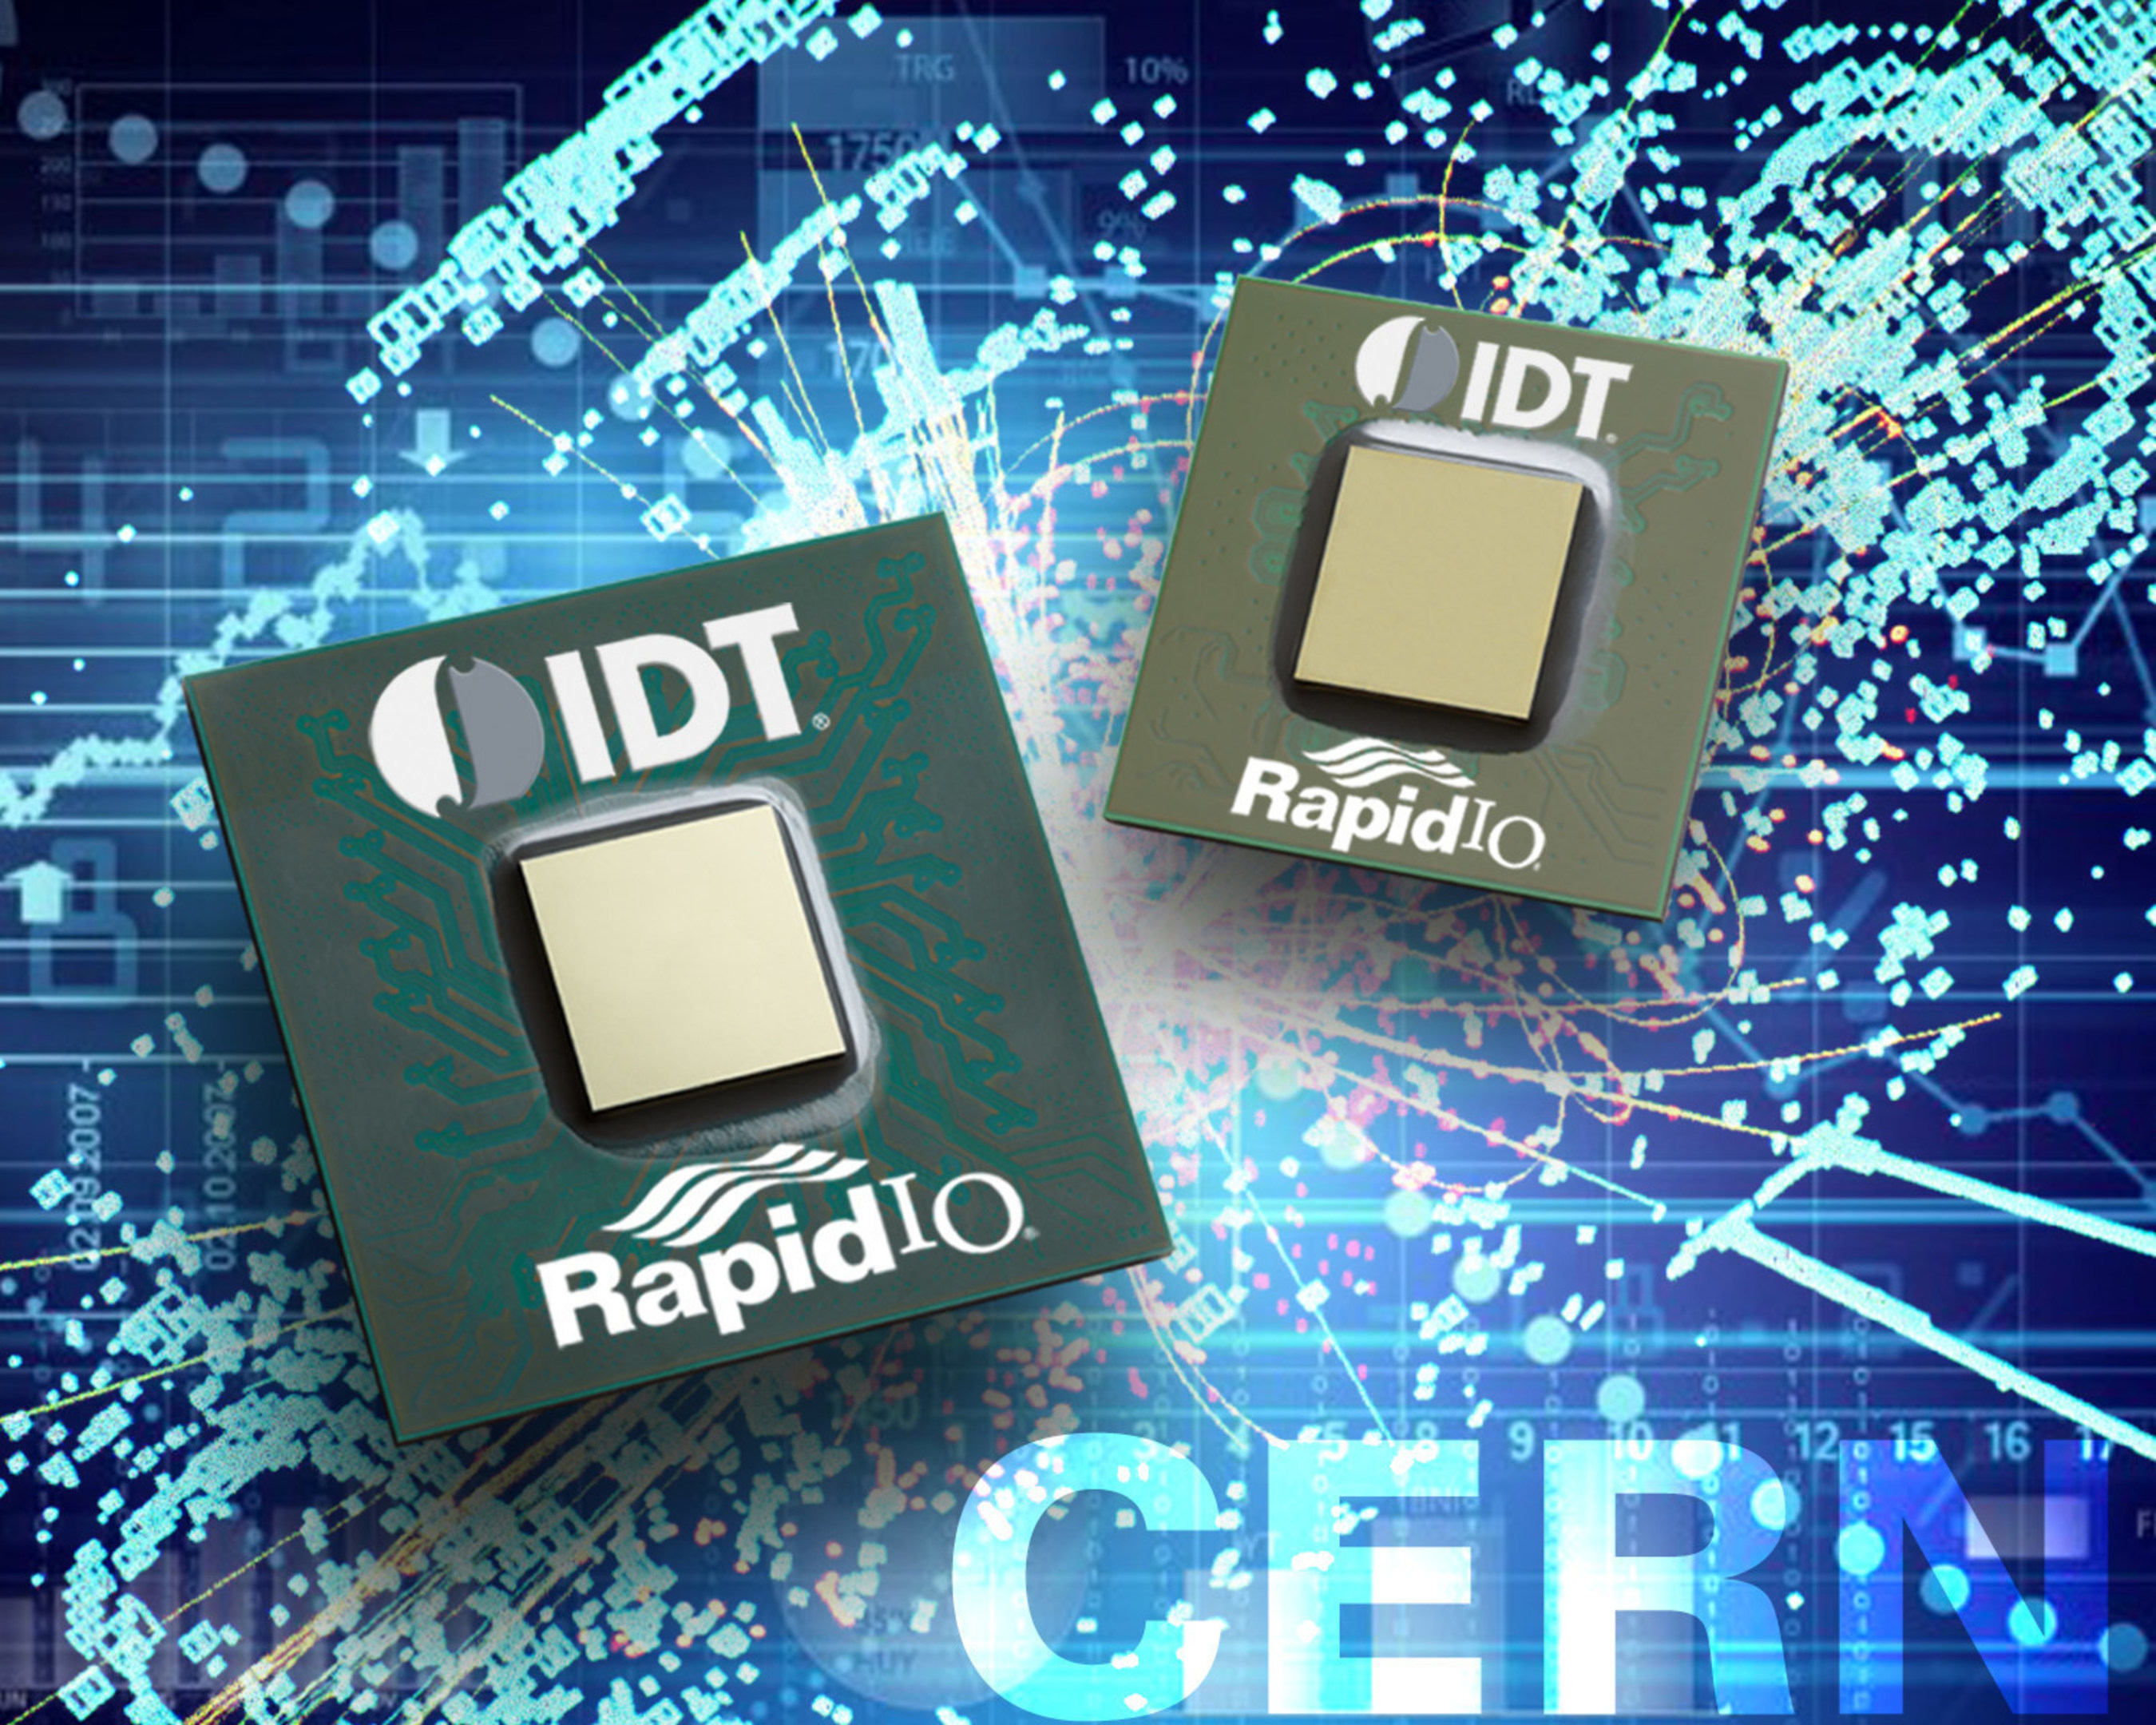 IDT and CERN openlab Engineer Low-Latency RapidIO Platform to Speed and Improve Analytics at Large Hadron Collider and Data Center